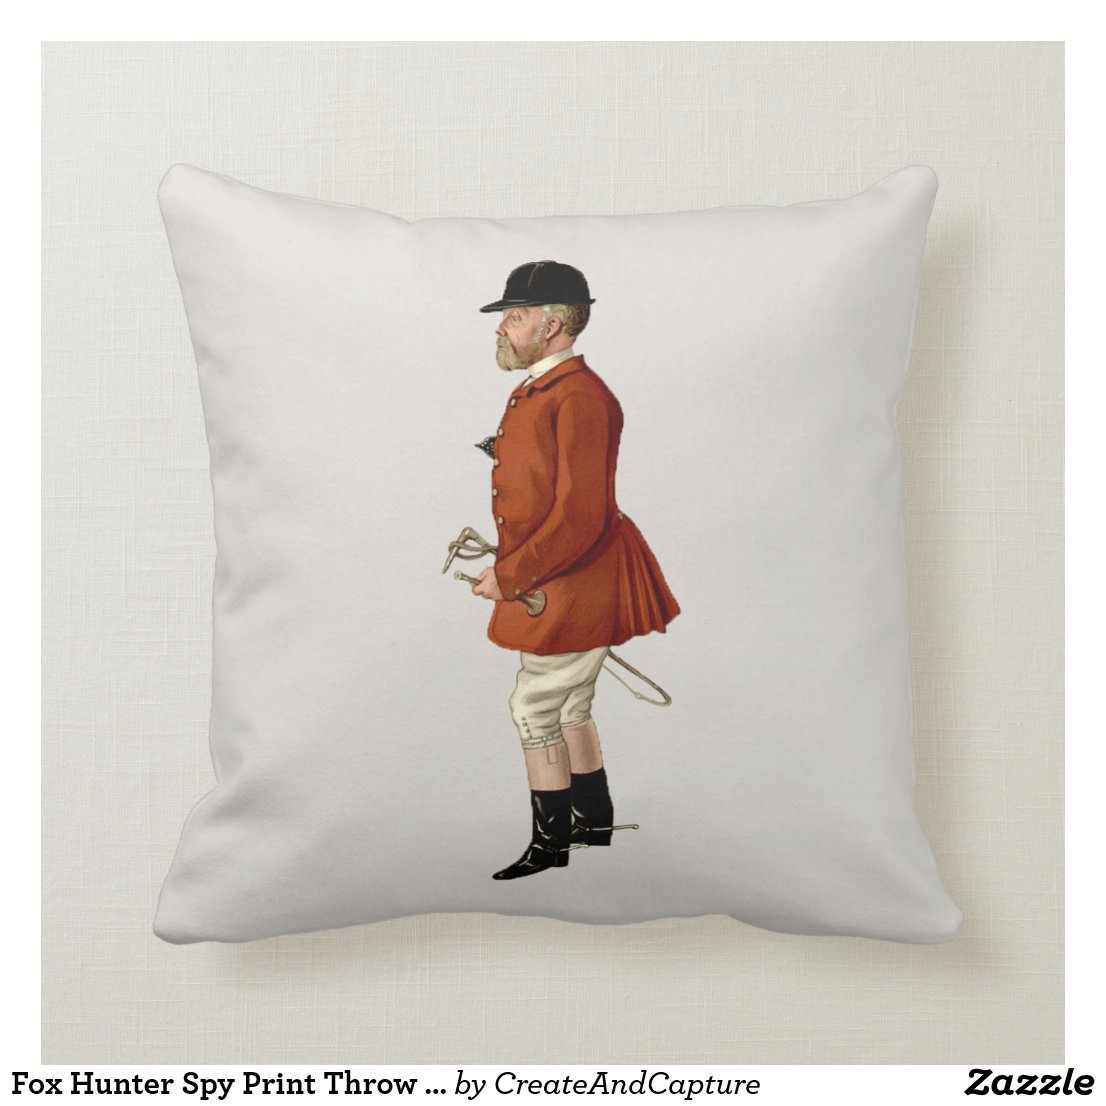 Fox Hunter Spy Print Throw Pillow | Mr Hargreaves